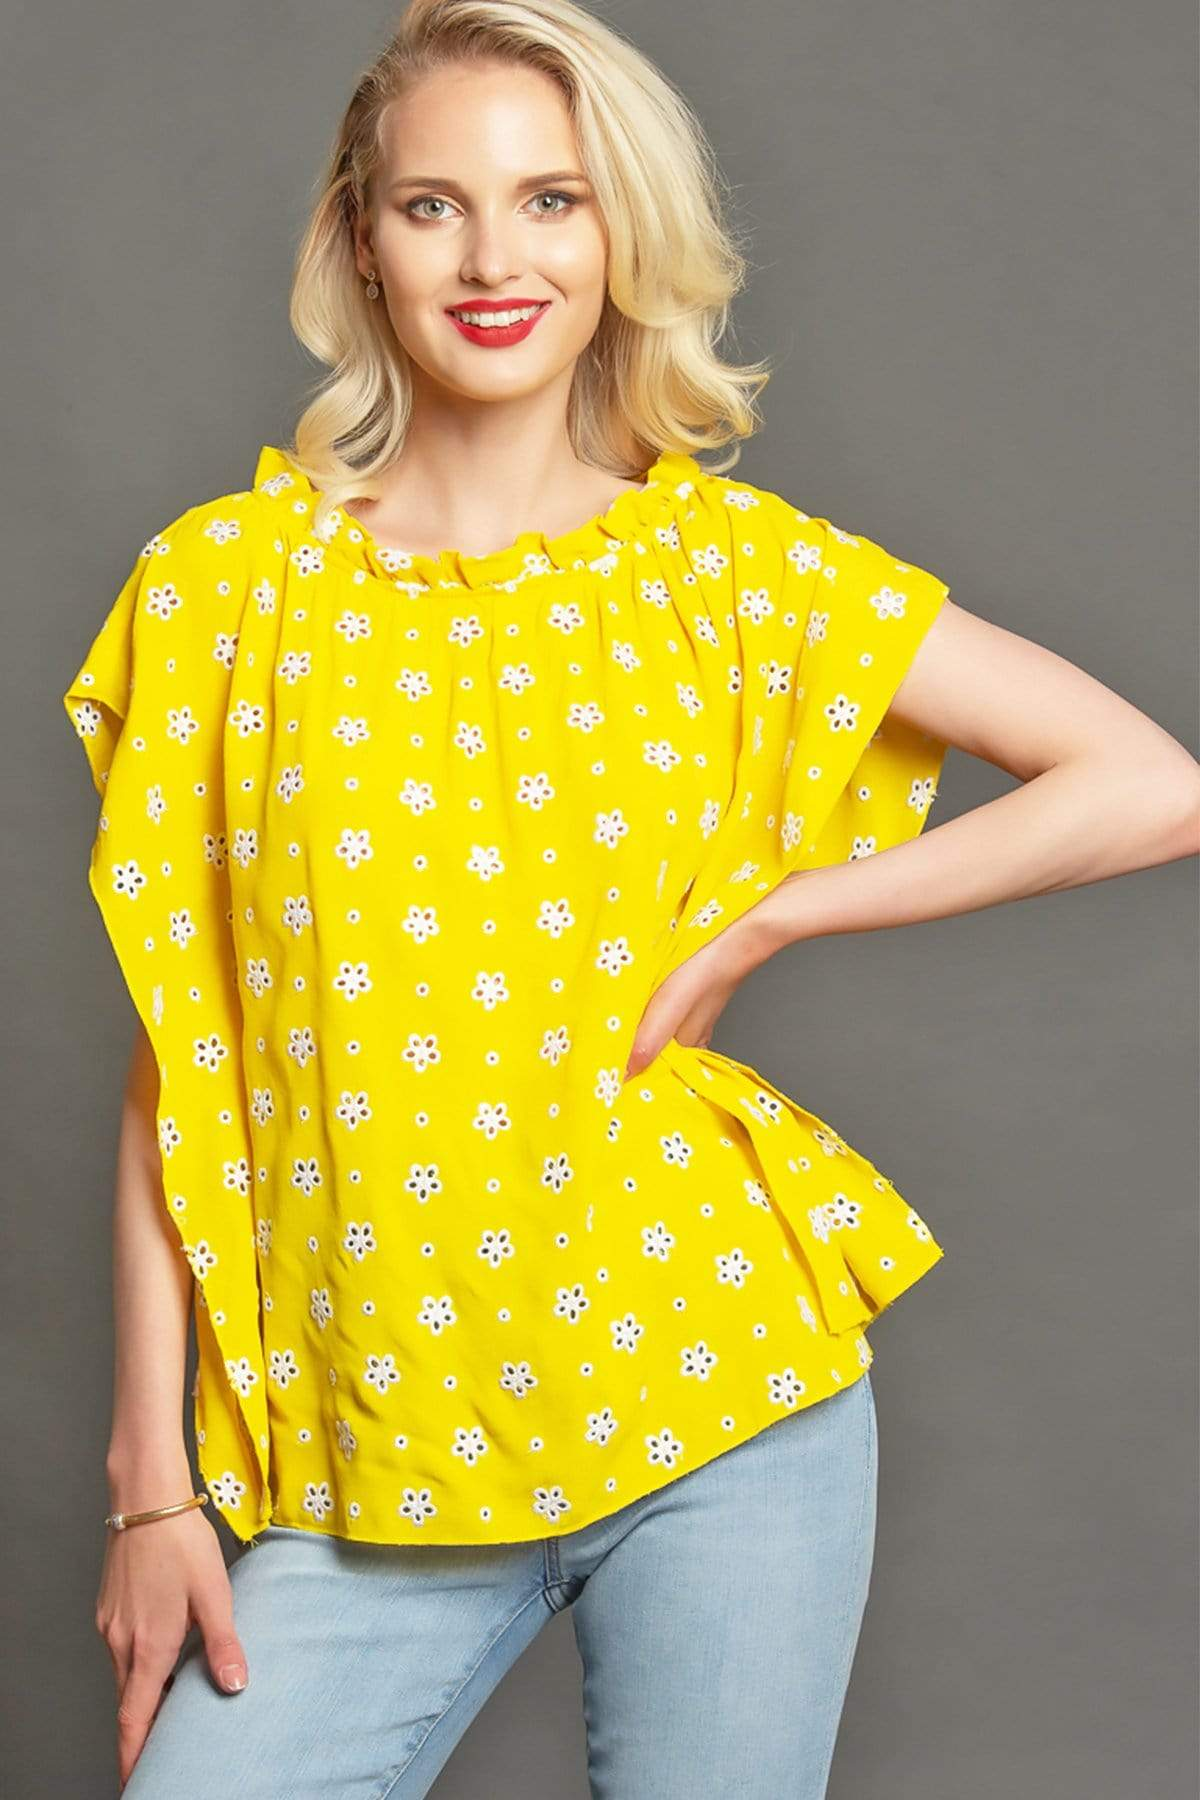 Eva Franco Top Cadence Top - Lemon Custard